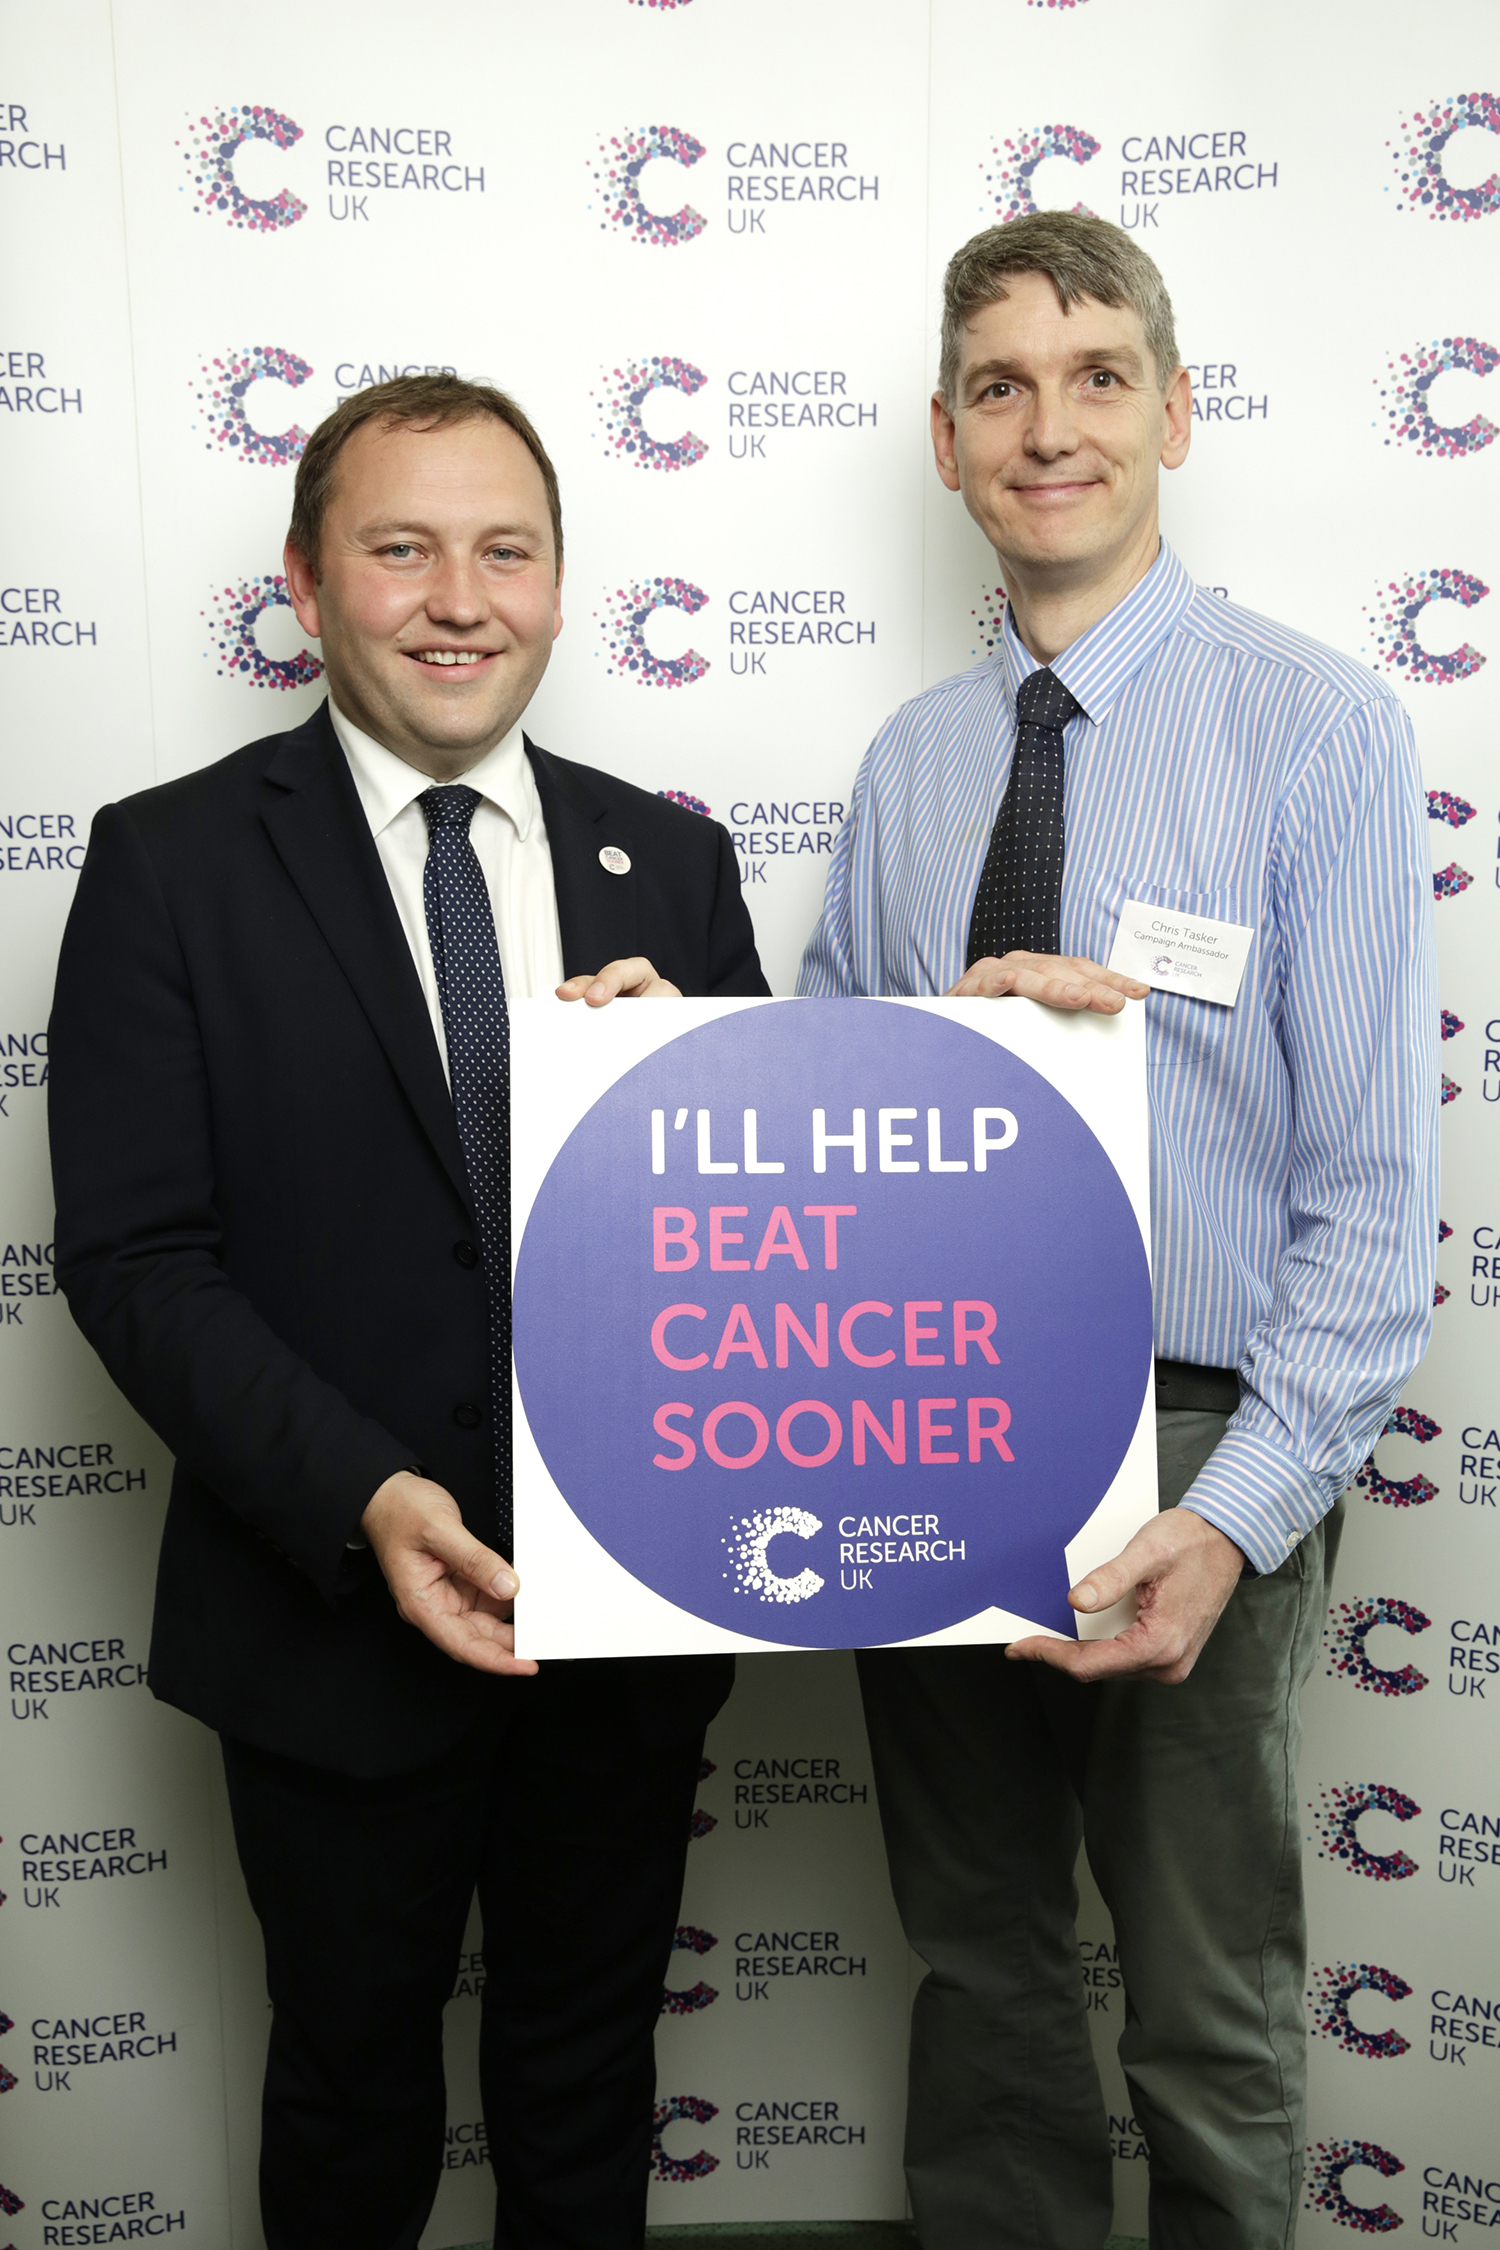 120717-CRUK_Westminster-MP-062-small.jpg